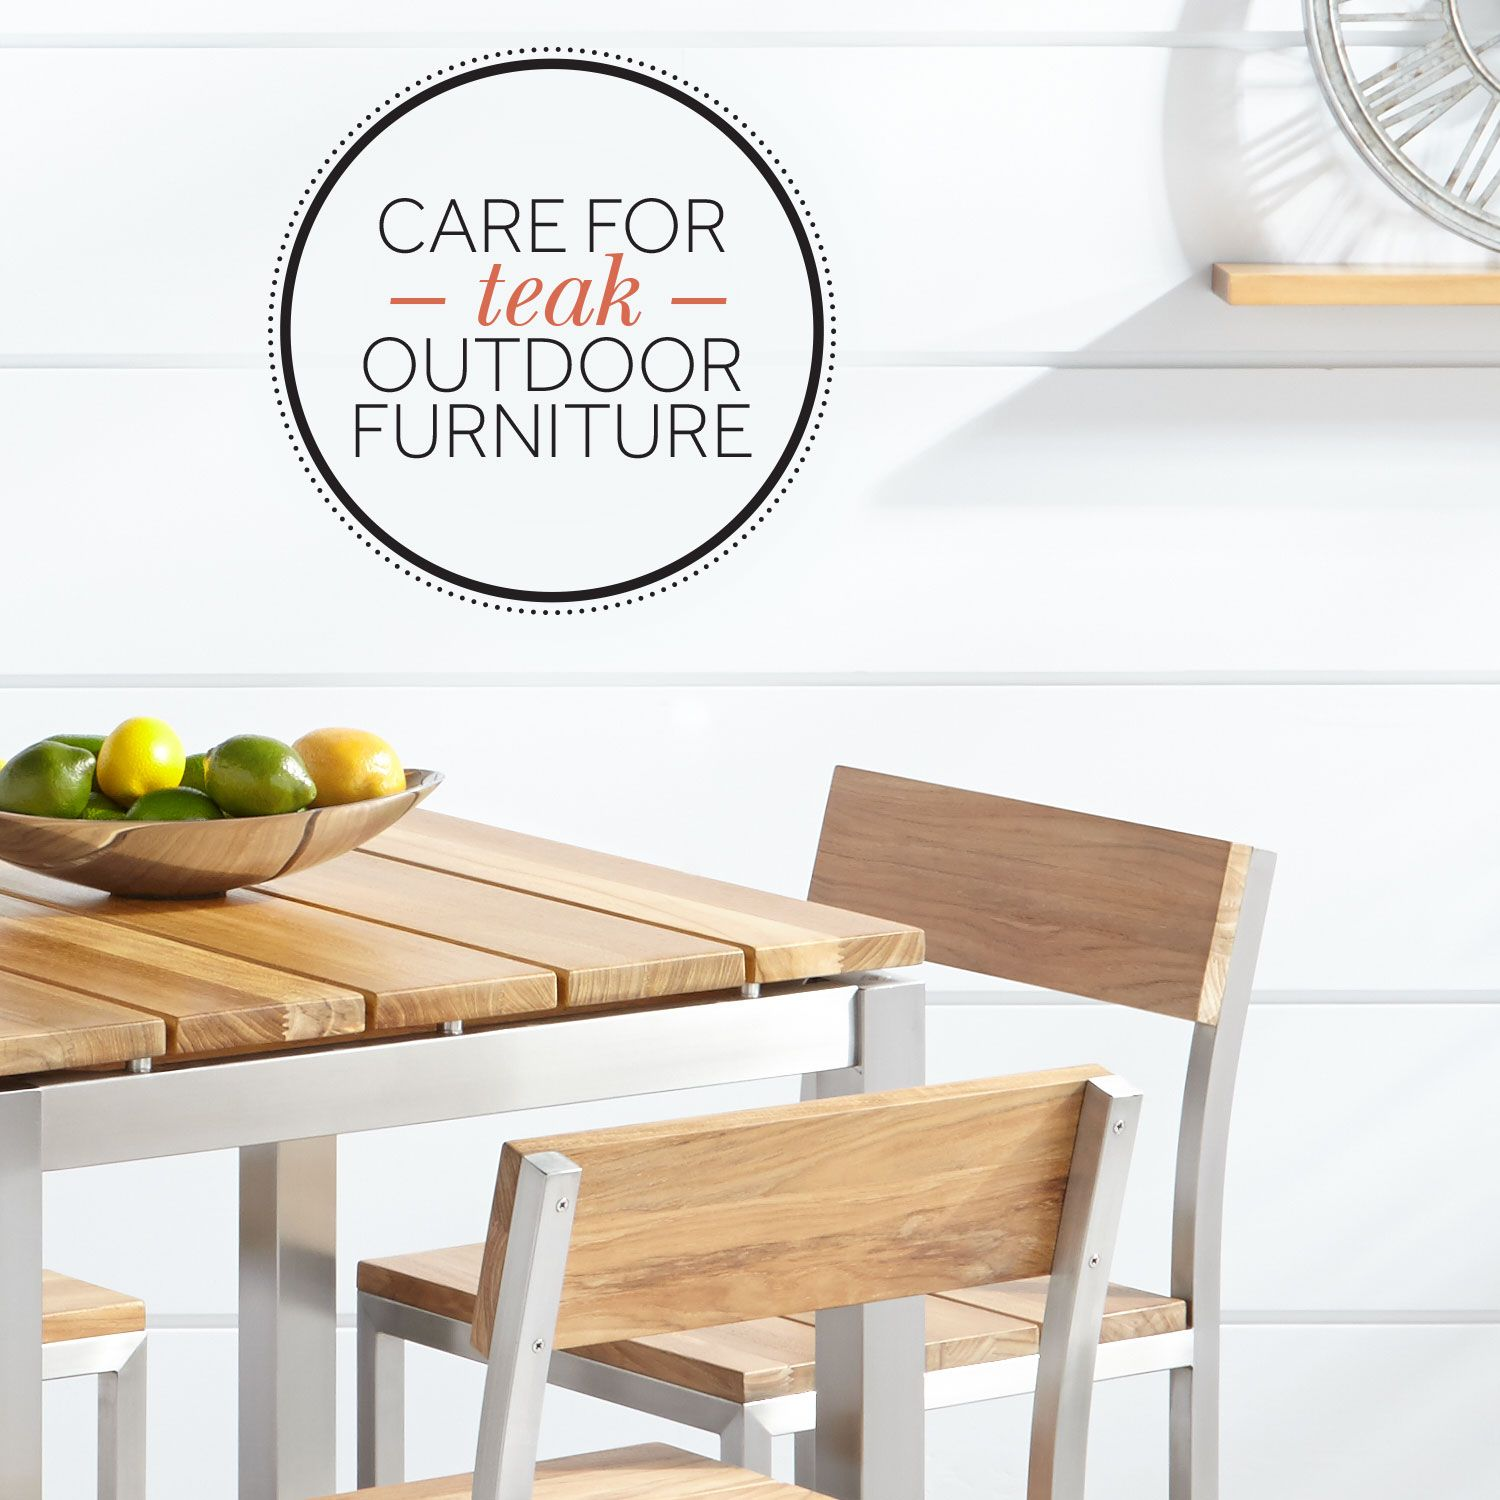 How To Care For Teak Outdoor Furniture Teak Outdoor Furniture Teak Outdoor Furniture